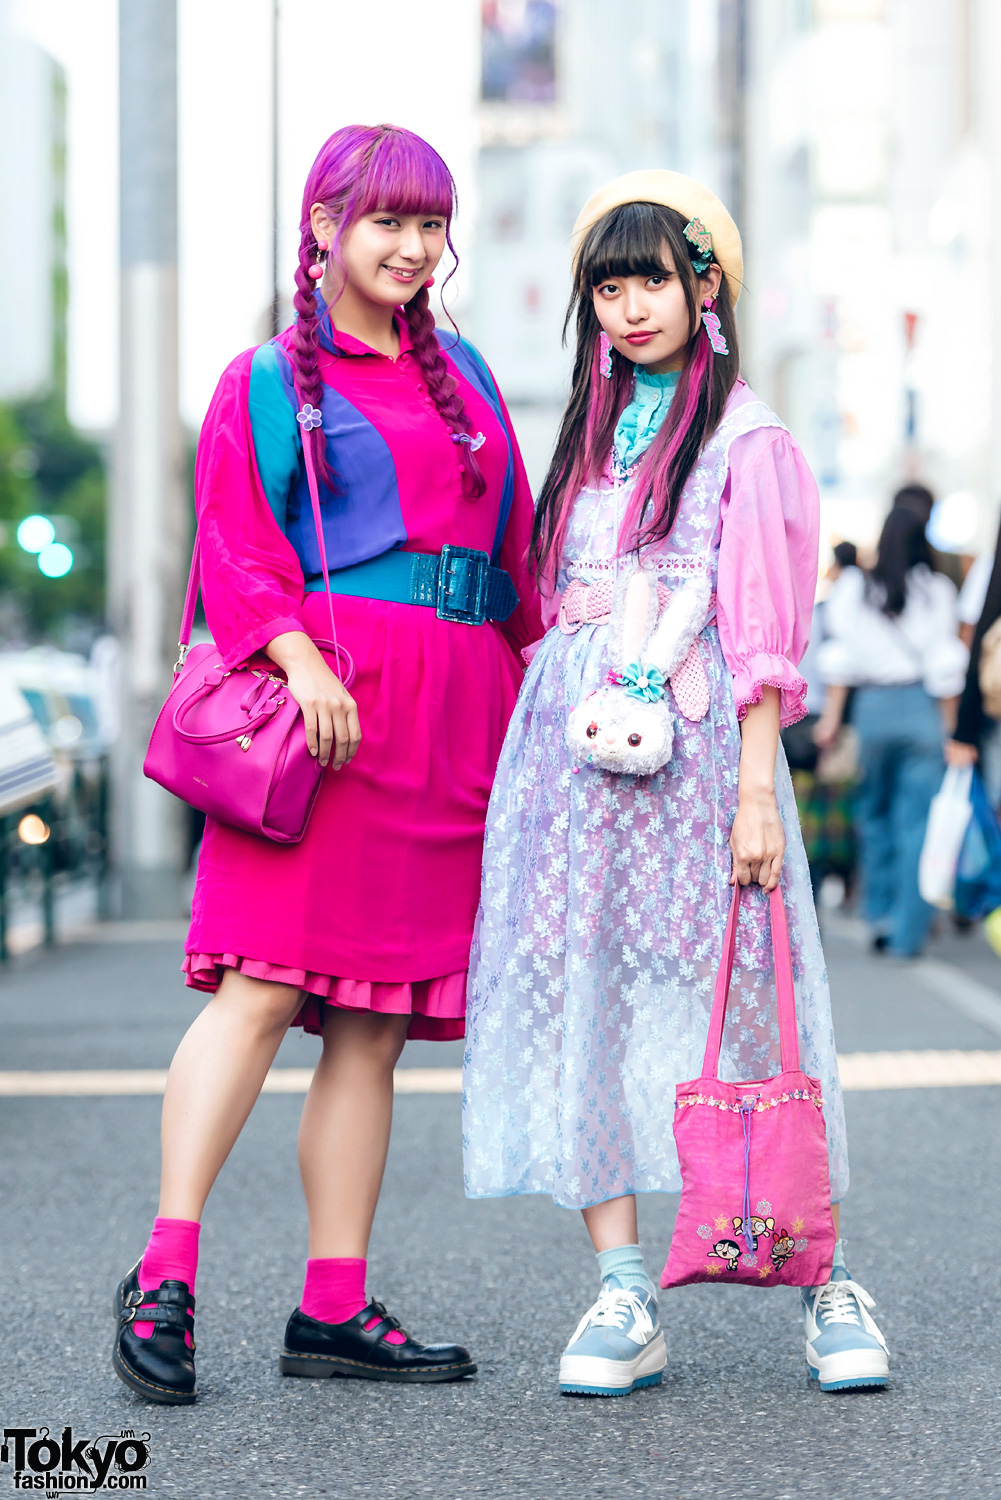 Harajuku Girls In Kawaii Pink & Pastel Fashion W/ RRR By